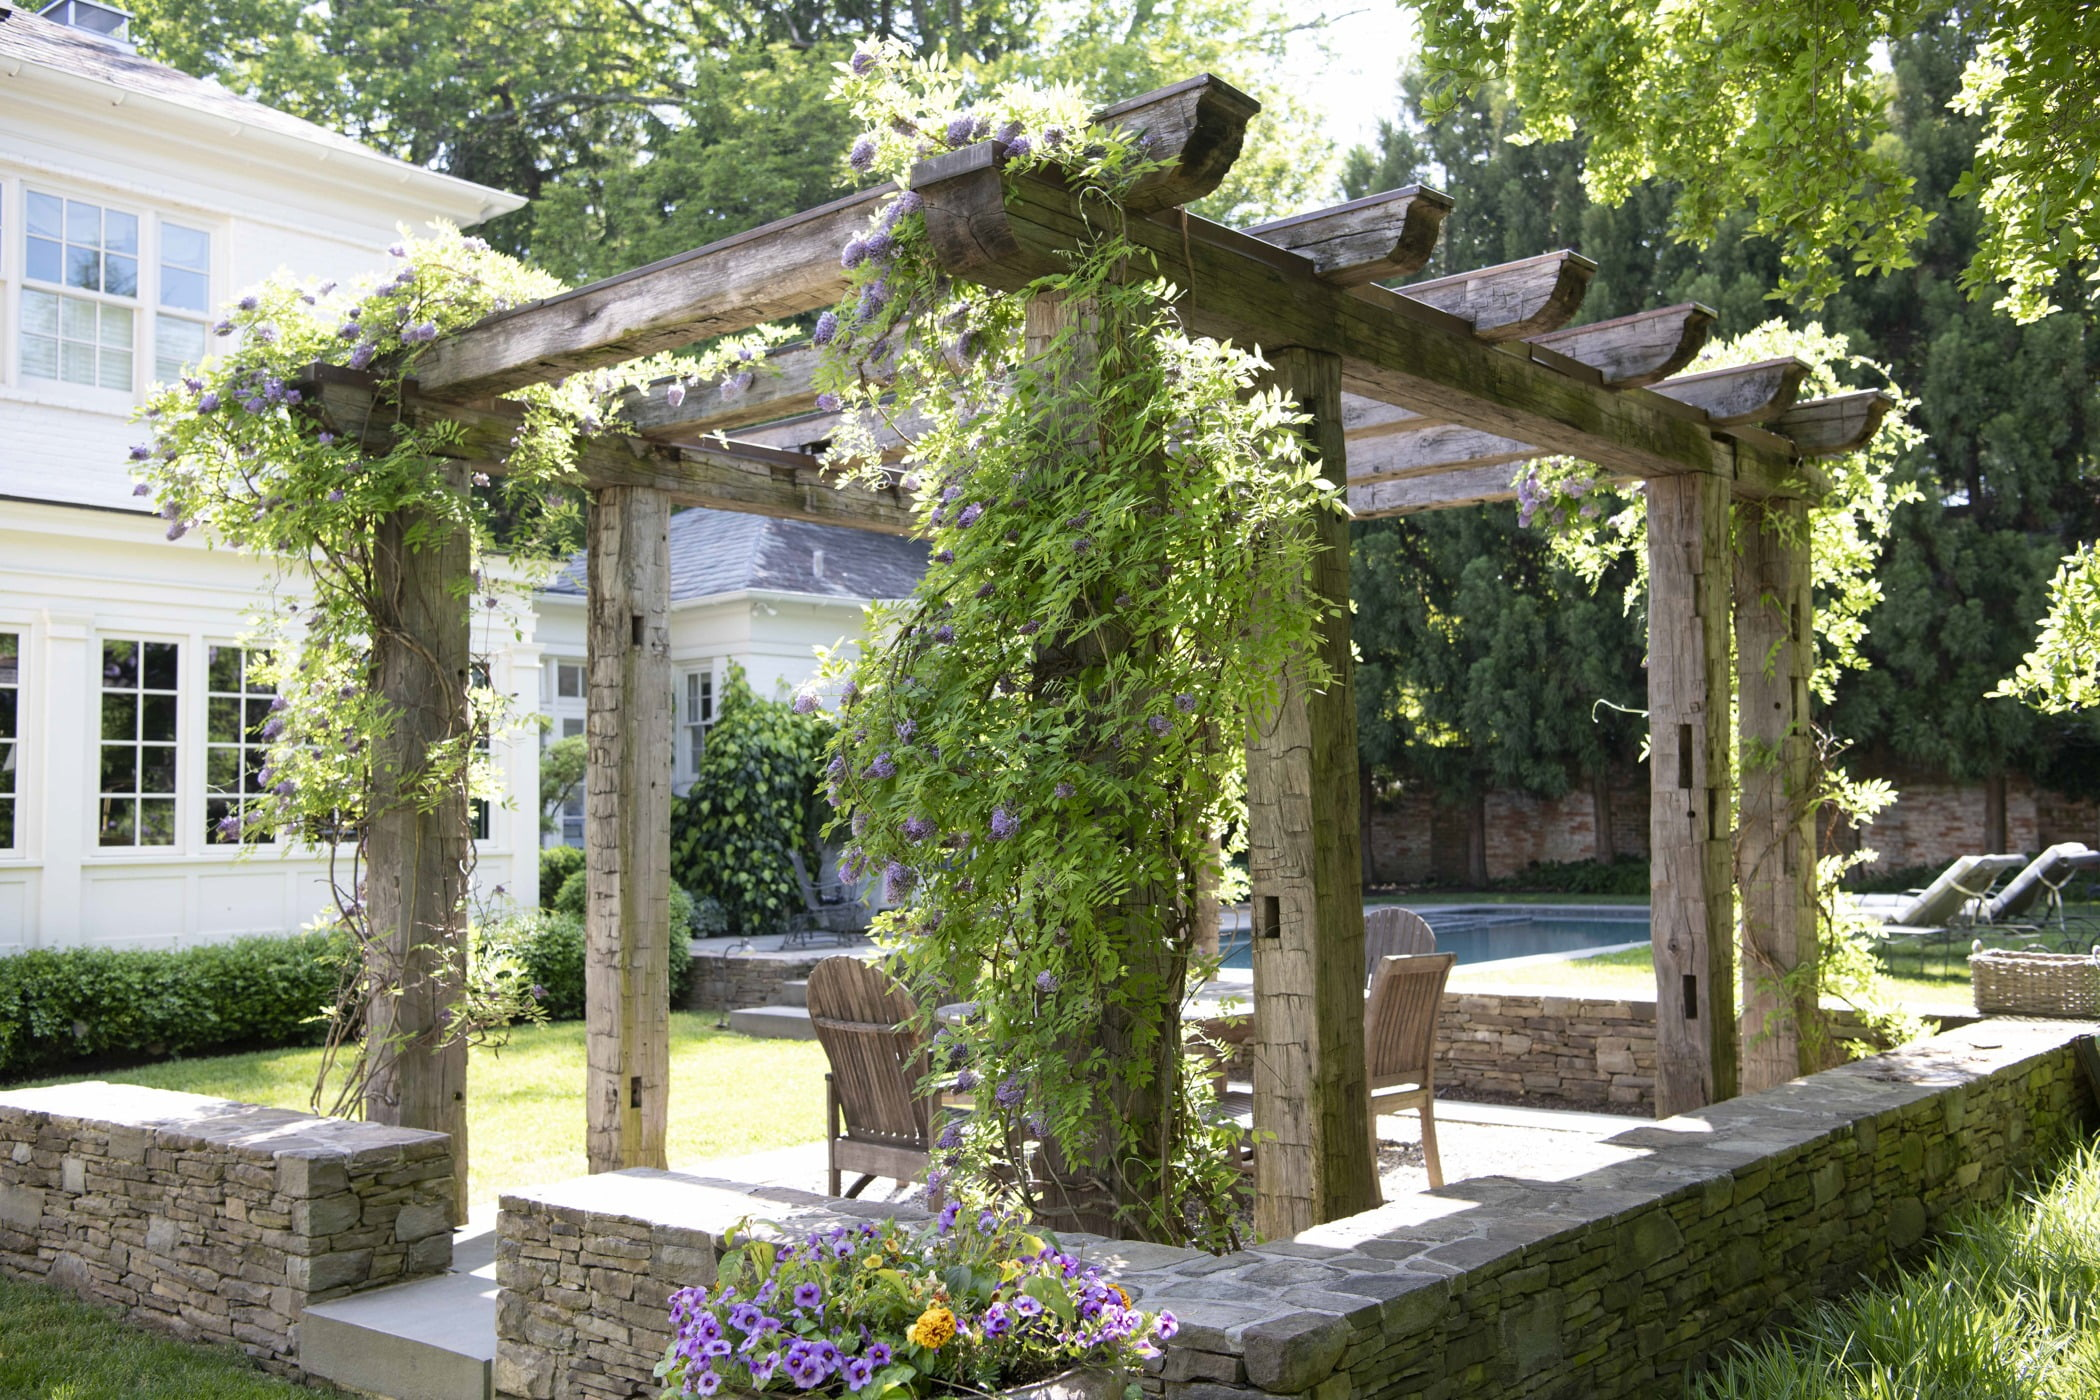 Ivy-covered wooden pergola and outdoor seating and dining area